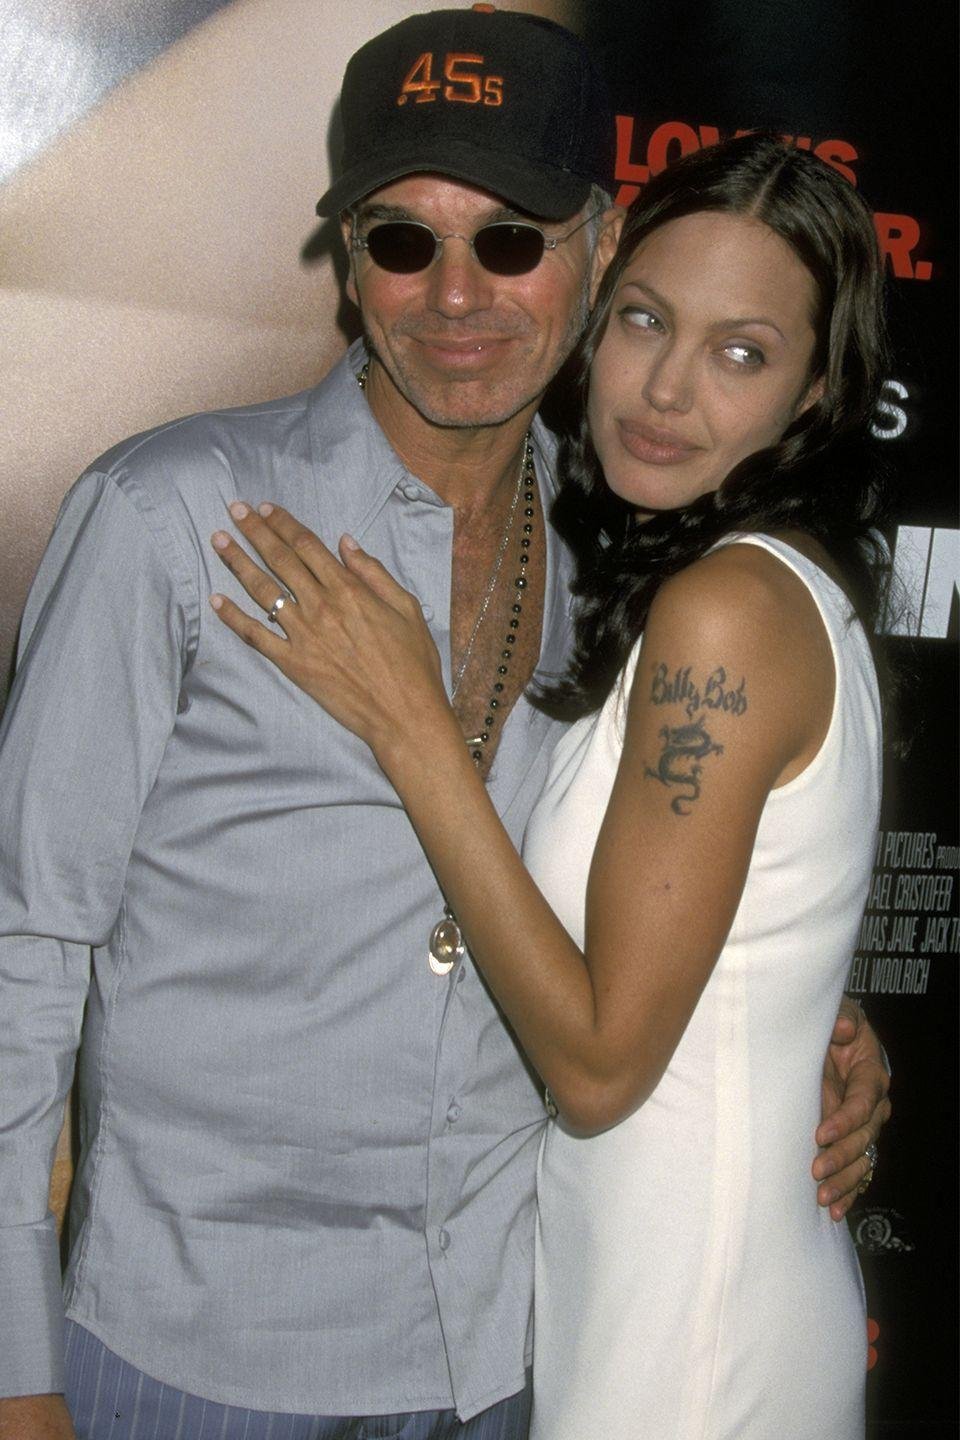 """<p>Remember that time Angelina Jolie and Billy Bob Thornton were a thing? And when she had his name tattooed on her arm above a dragon? Well, after they were divorced in 2003, Jolie decided she no longer wanted """"Billy Bob"""" on her body. </p><p>""""I never felt good enough for her,"""" Thornton later said in an interview with <a href=""""https://www.gq.com/story/billy-bob-thornton-bad-santa-2-profile"""" rel=""""nofollow noopener"""" target=""""_blank"""" data-ylk=""""slk:GQ"""" class=""""link rapid-noclick-resp""""><em>GQ</em></a>. """"I'm real uncomfortable around rich and important people.""""<br></p>"""